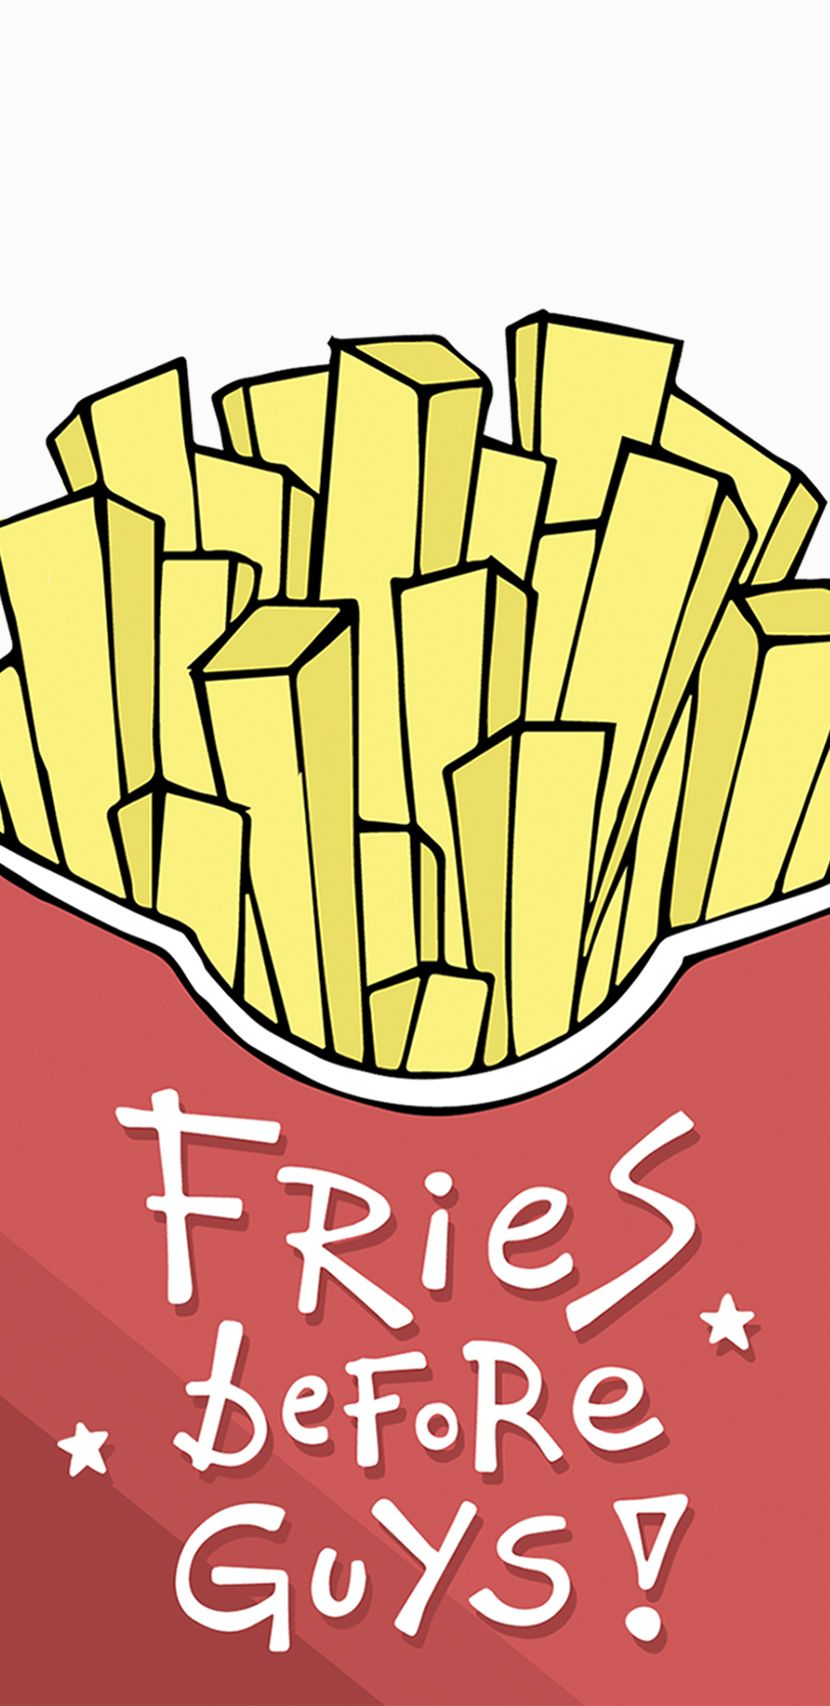 Happy French Fries Day Ipod Wallpaper Cute Wallpapers Pretty Phone Wallpaper